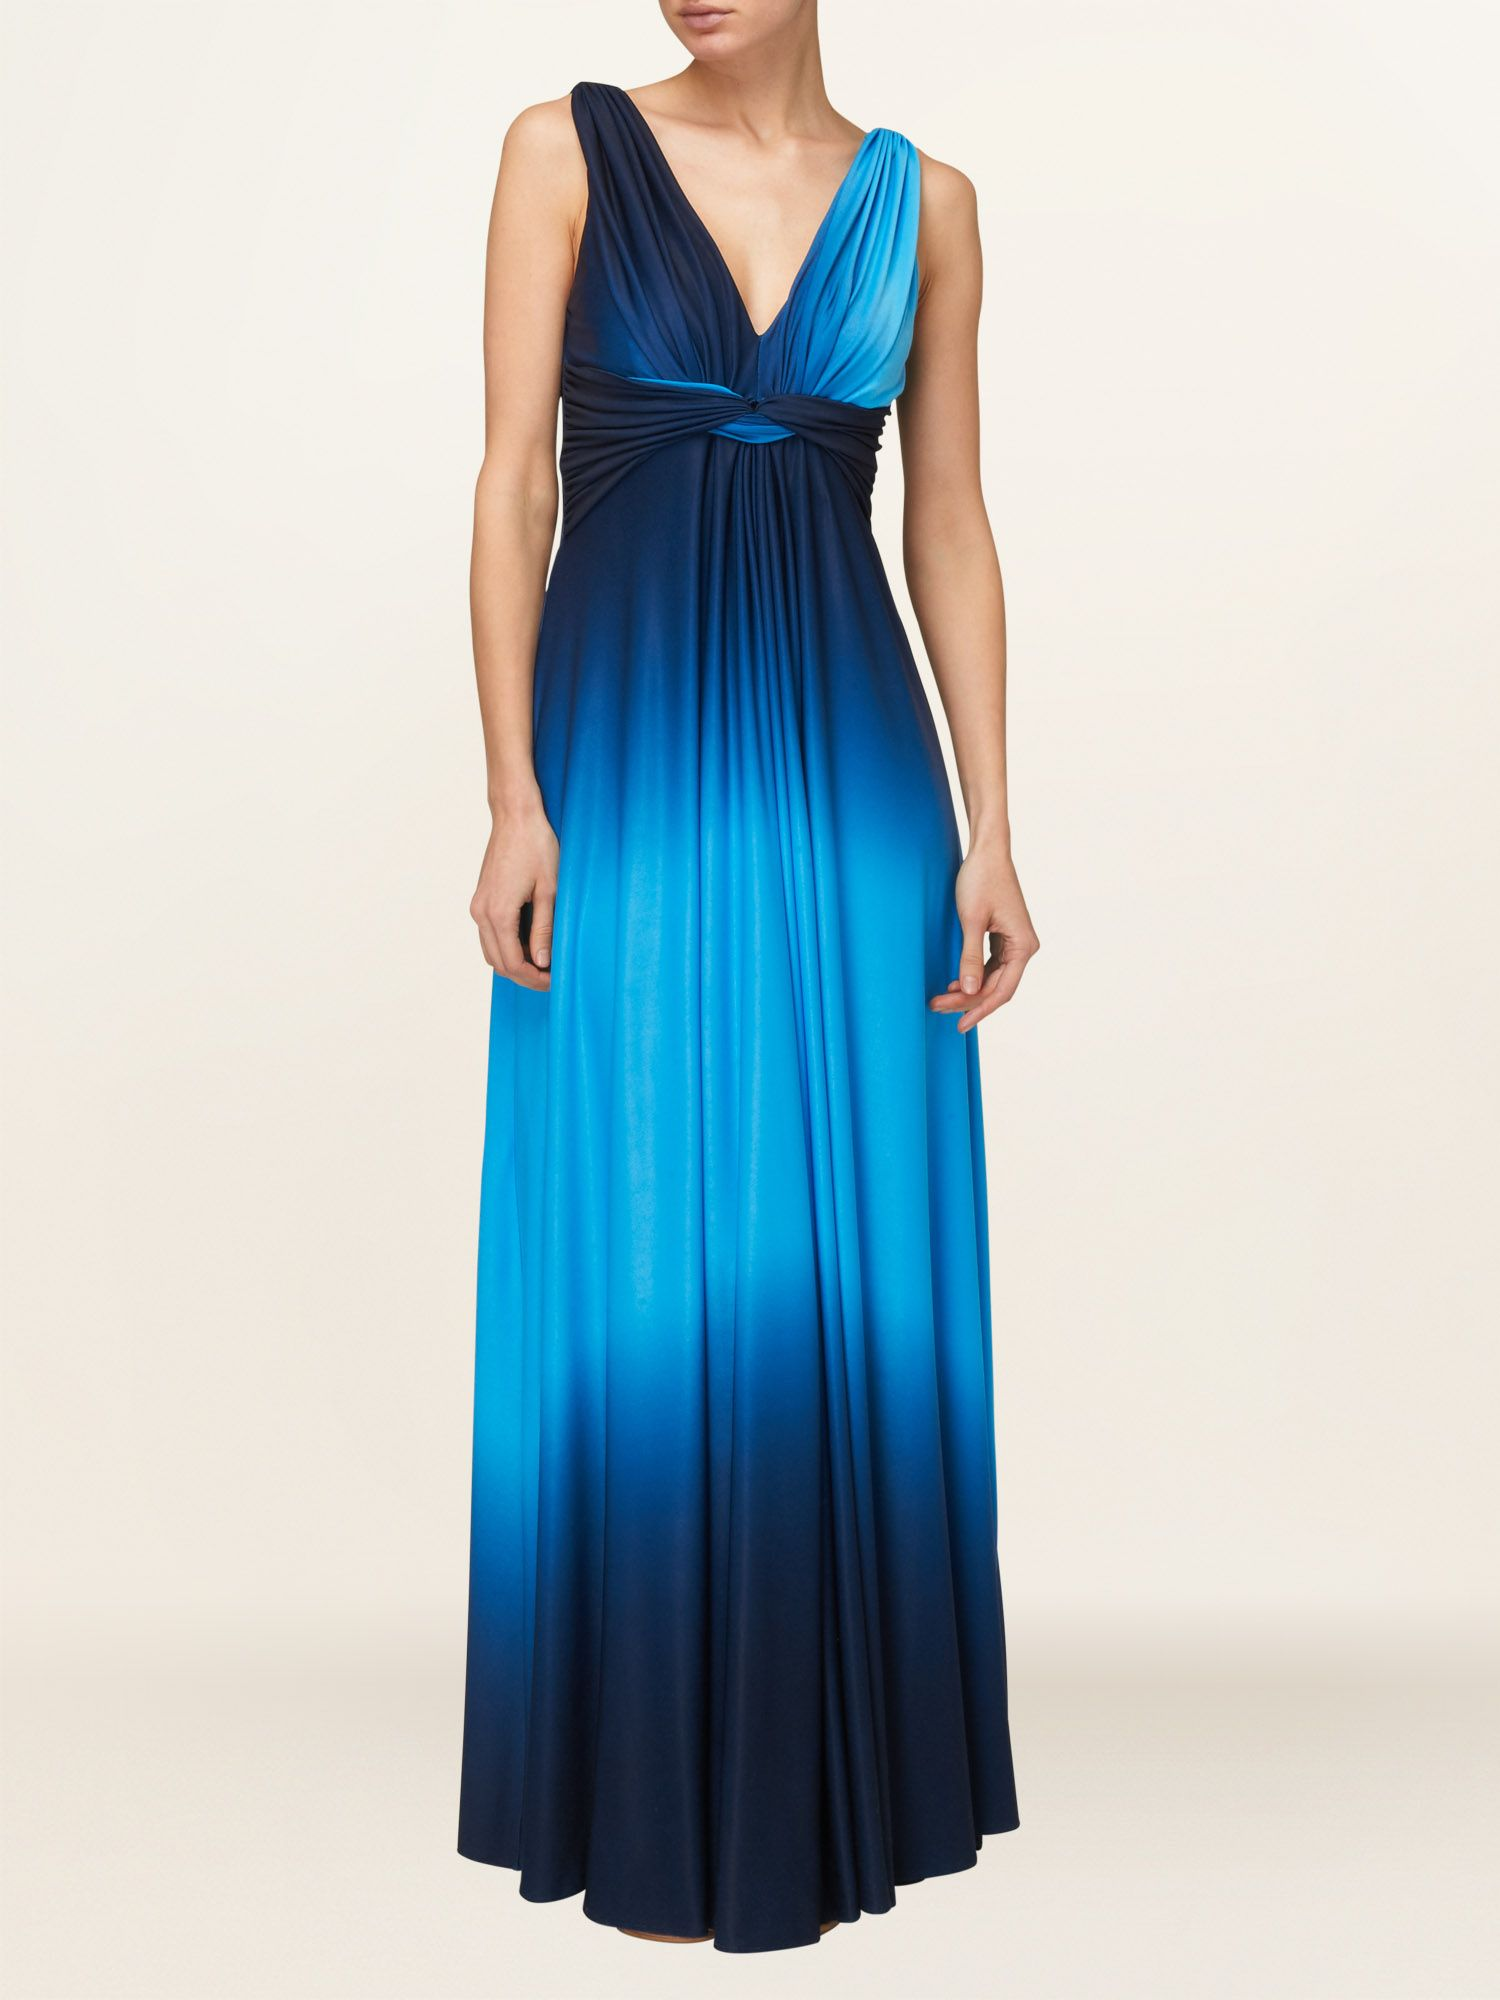 Dip dyed maxi dress